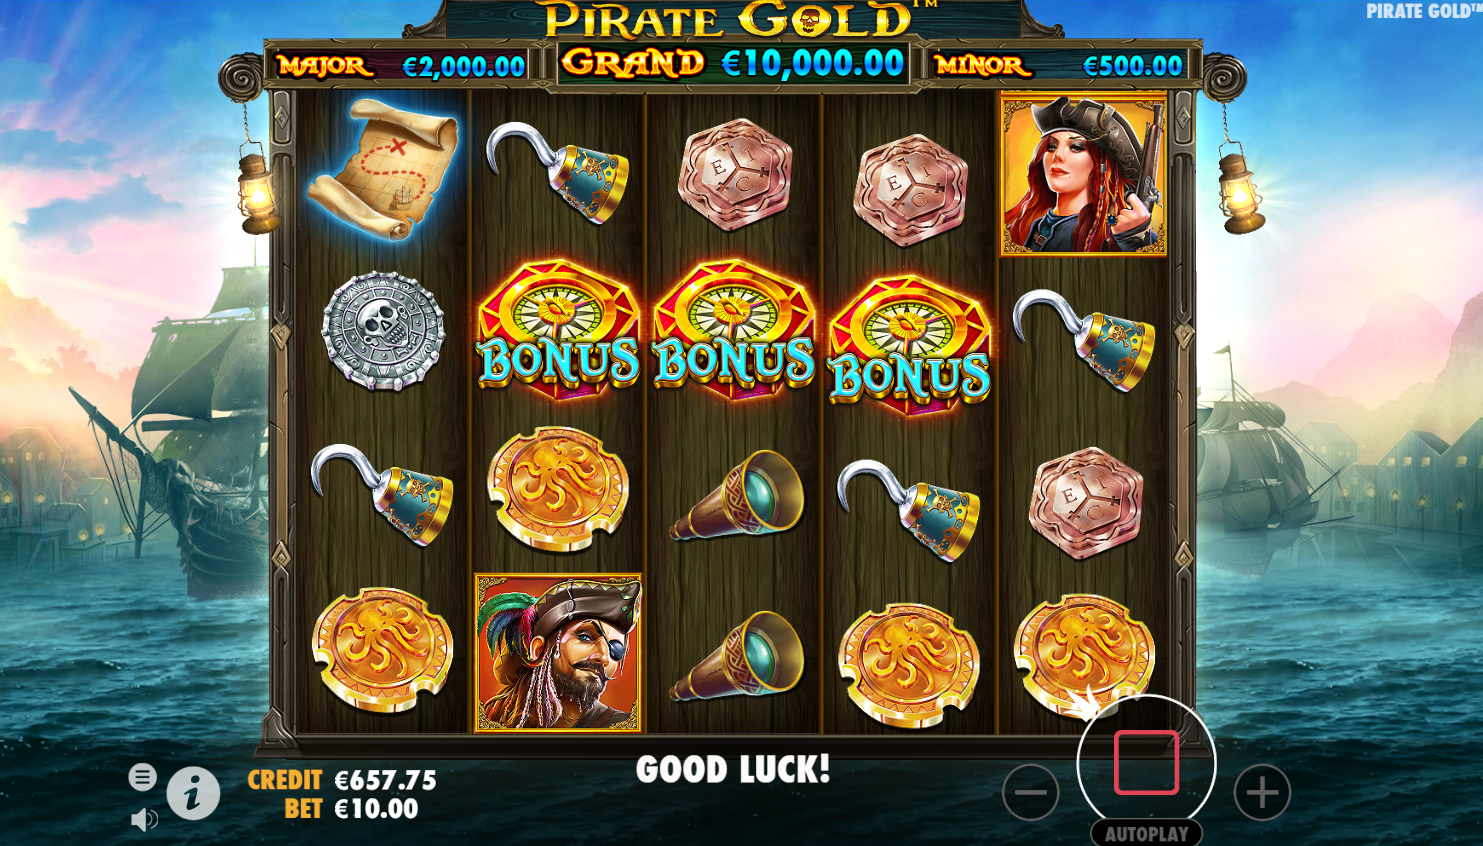 Pirates Gold bonus round